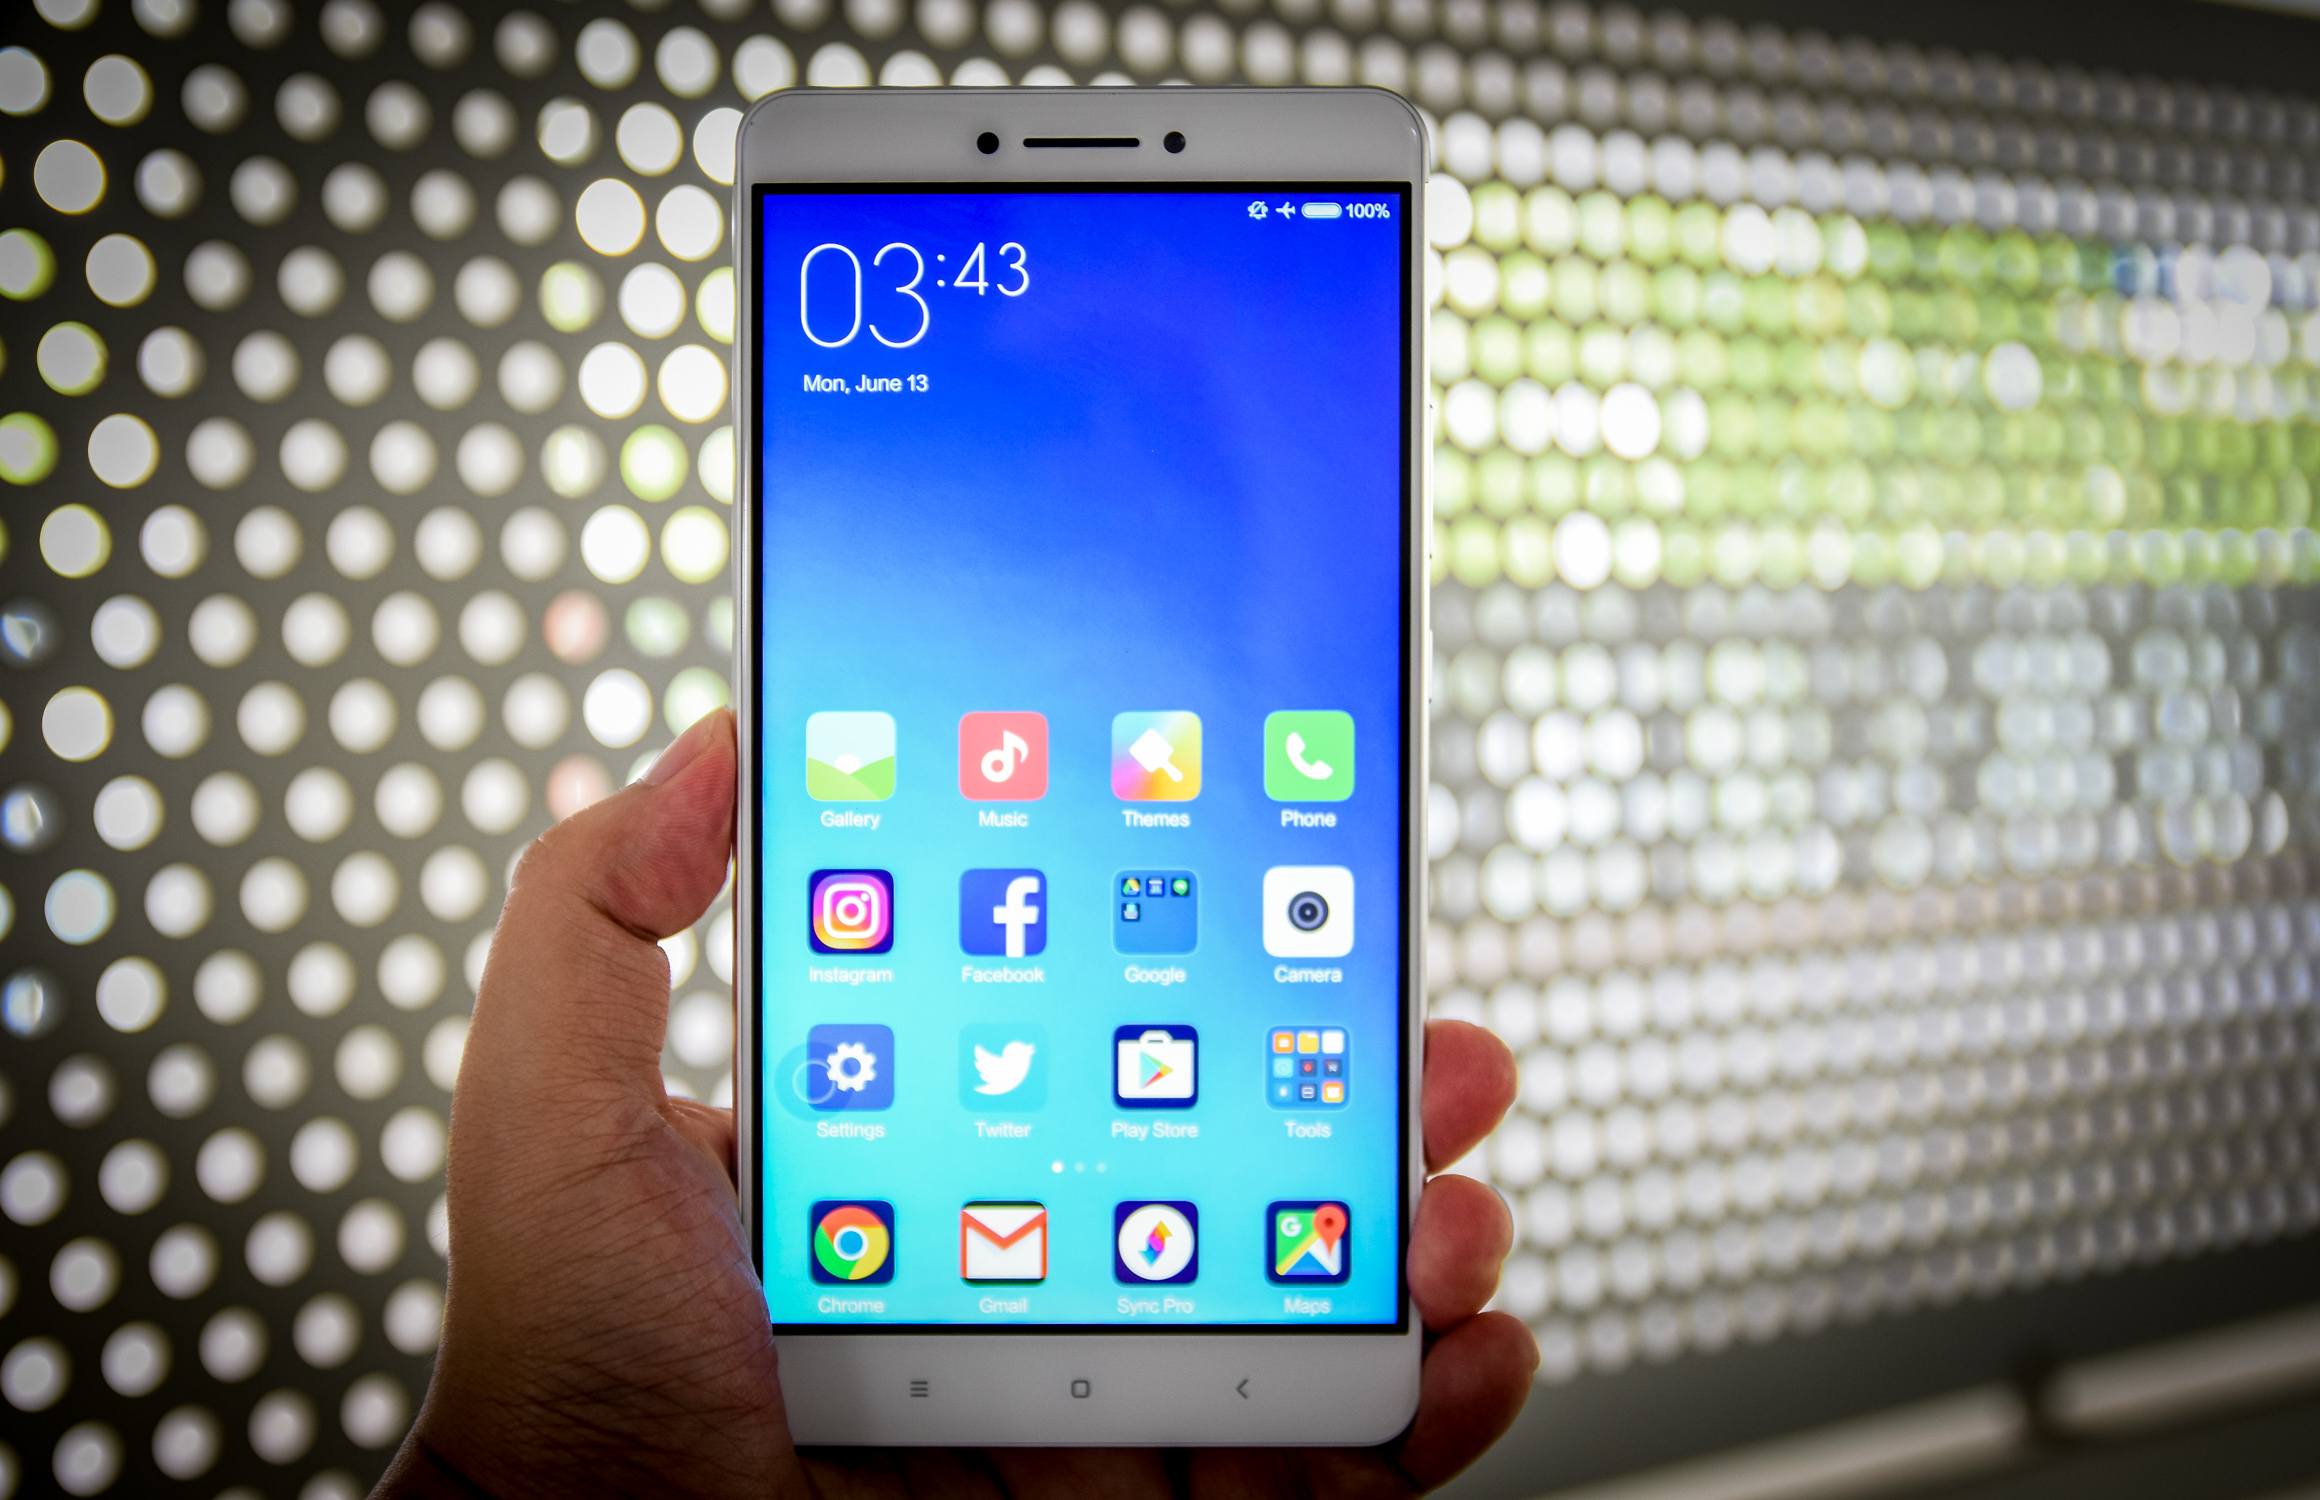 Video: Xiaomi Mi Max is a big phone for video watching